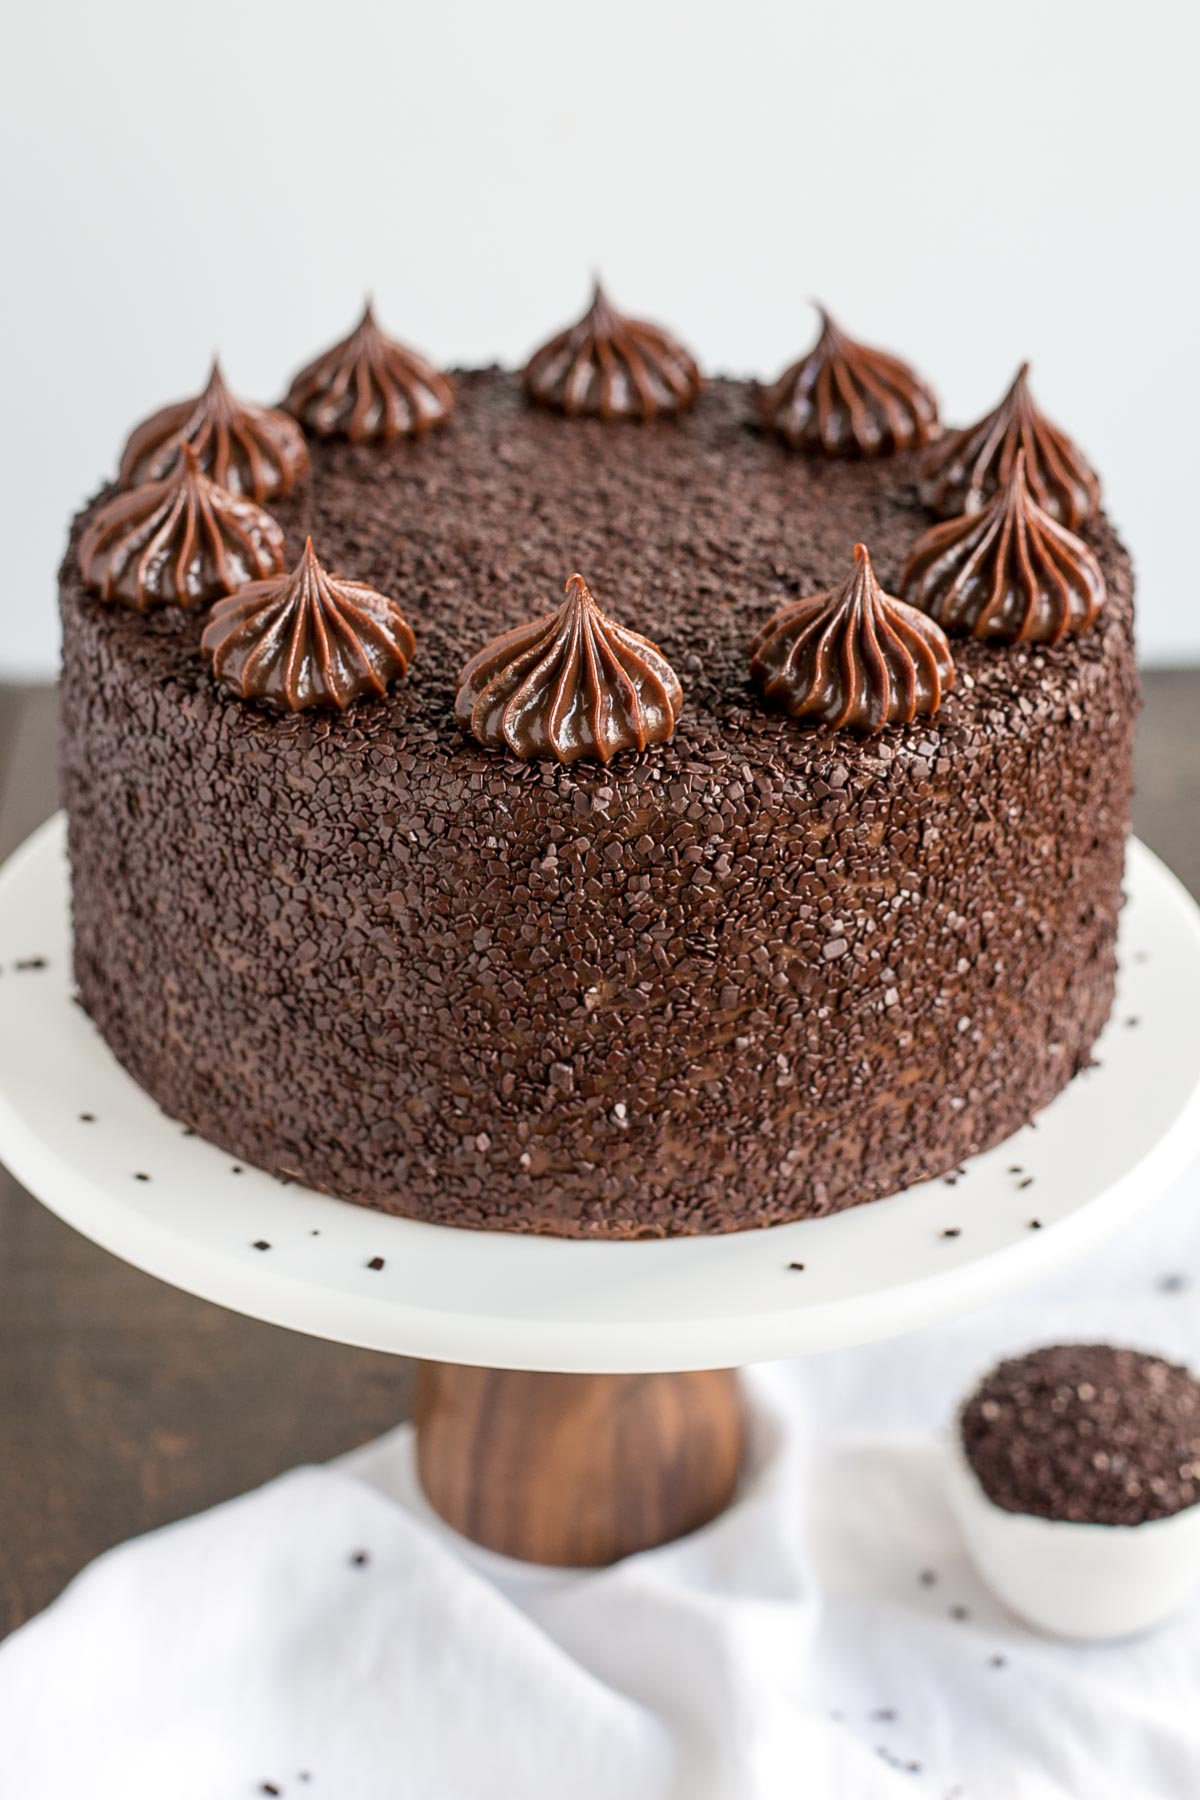 A close up of a chocolate cake on a white cake stand.